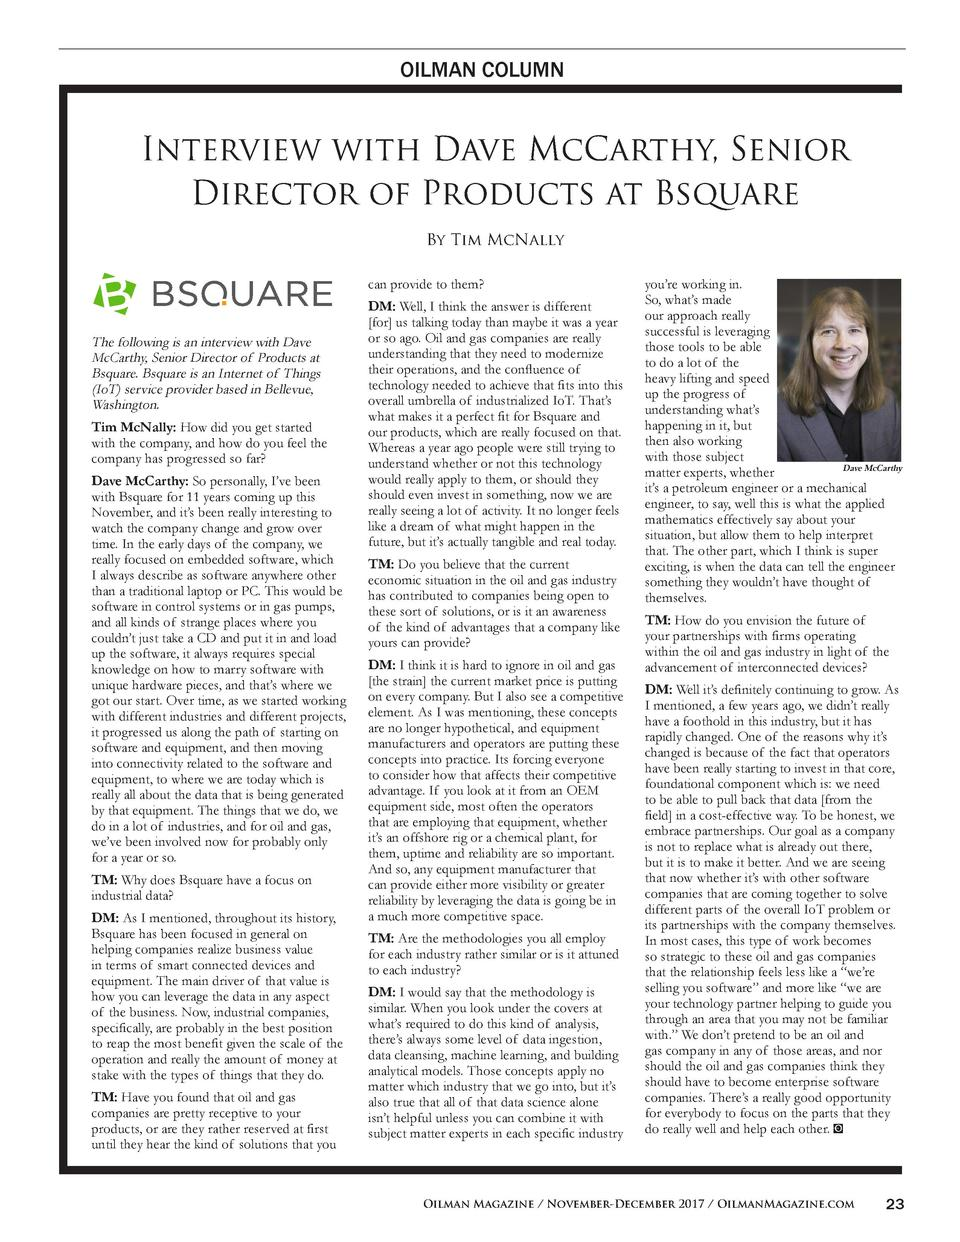 OILMAN COLUMN  Interview with Dave McCarthy, Senior Director of Products at Bsquare By Tim McNally can provide to them   T...